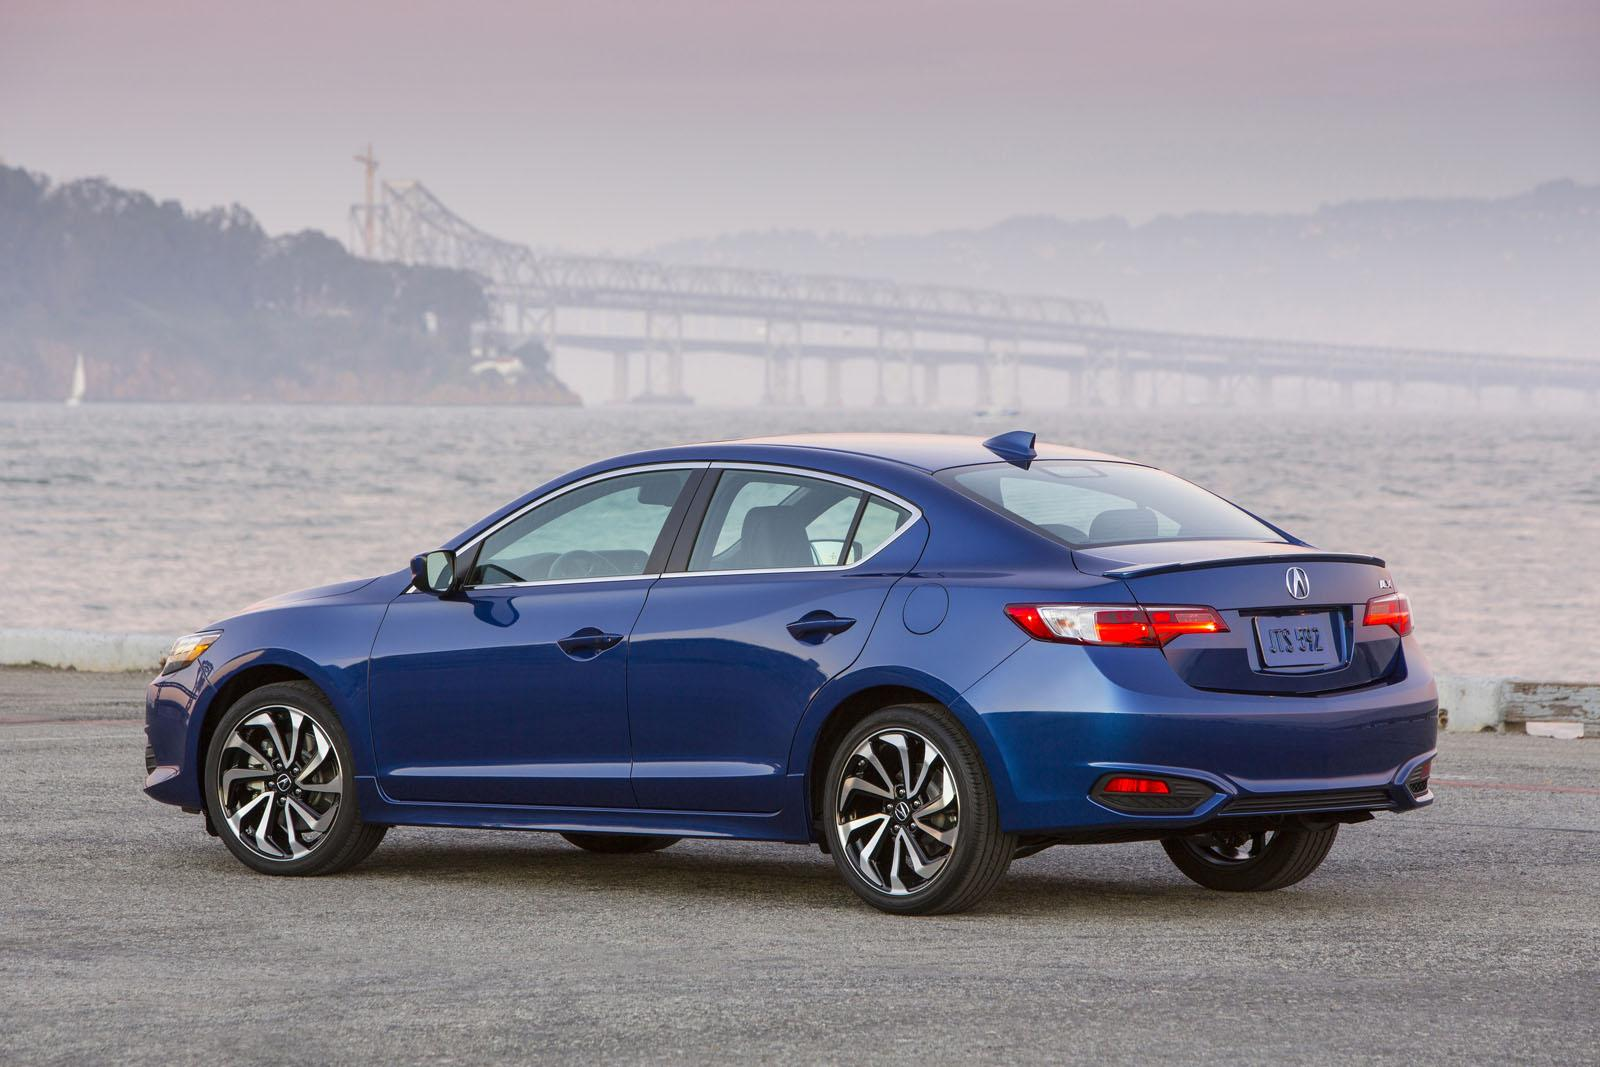 2016 Acura ILX 5 2016 Acura ILX Features and details